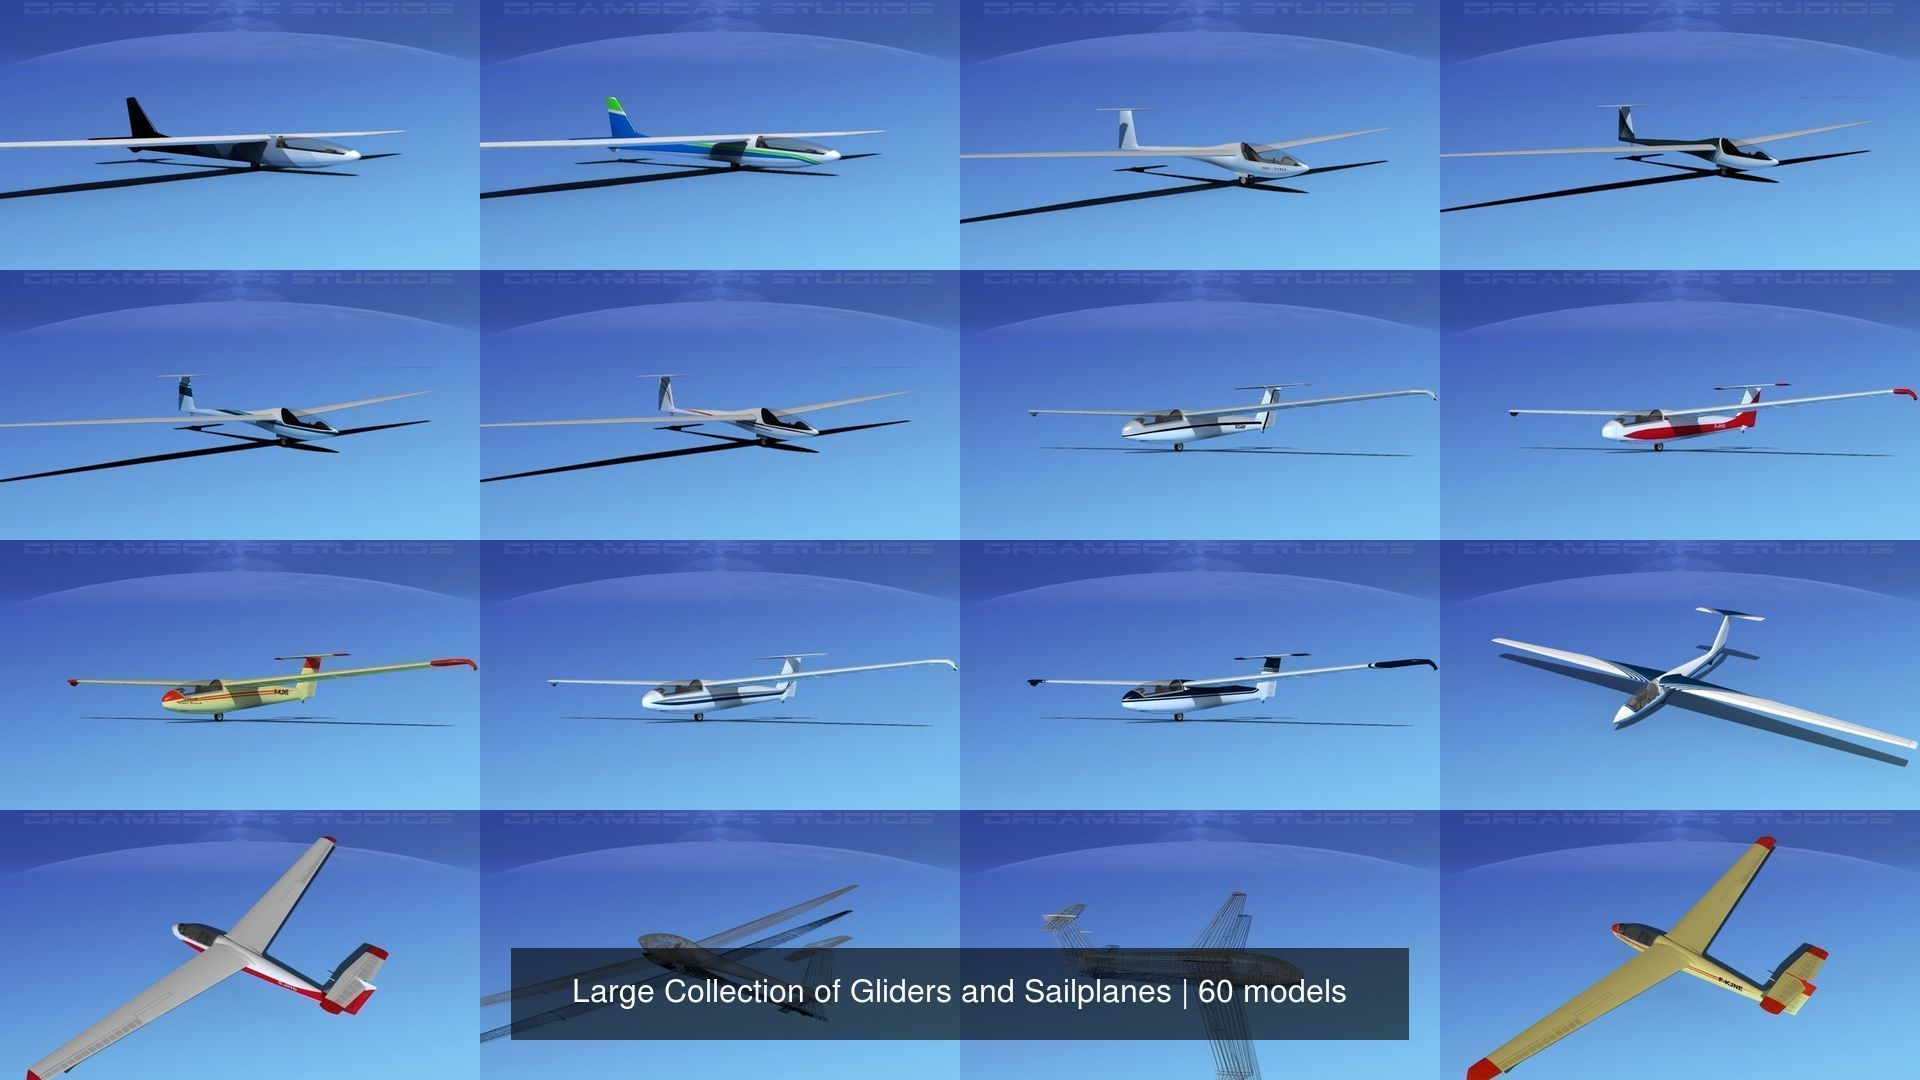 Large Collection of 60 Gliders and Sailplanes